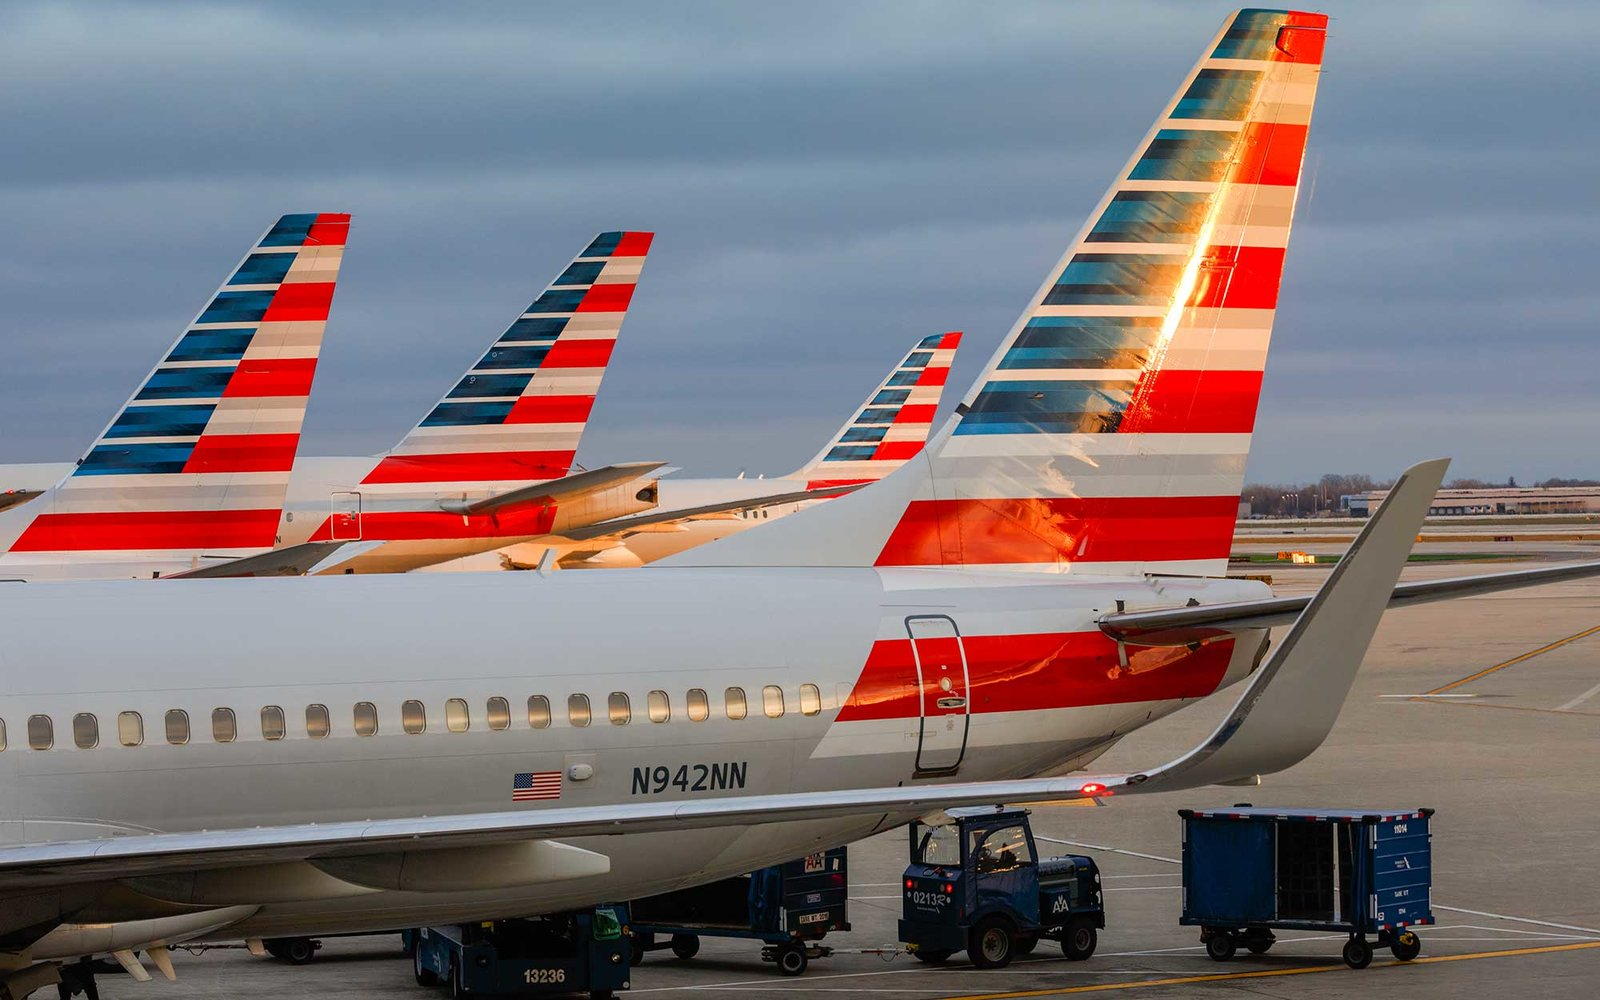 American Airlines planes prepare for takeoff at Chicago's O'Hare International Airport, on Christmas day December 25, 2015. (Photo by John Gress/Corbis via Getty Images)